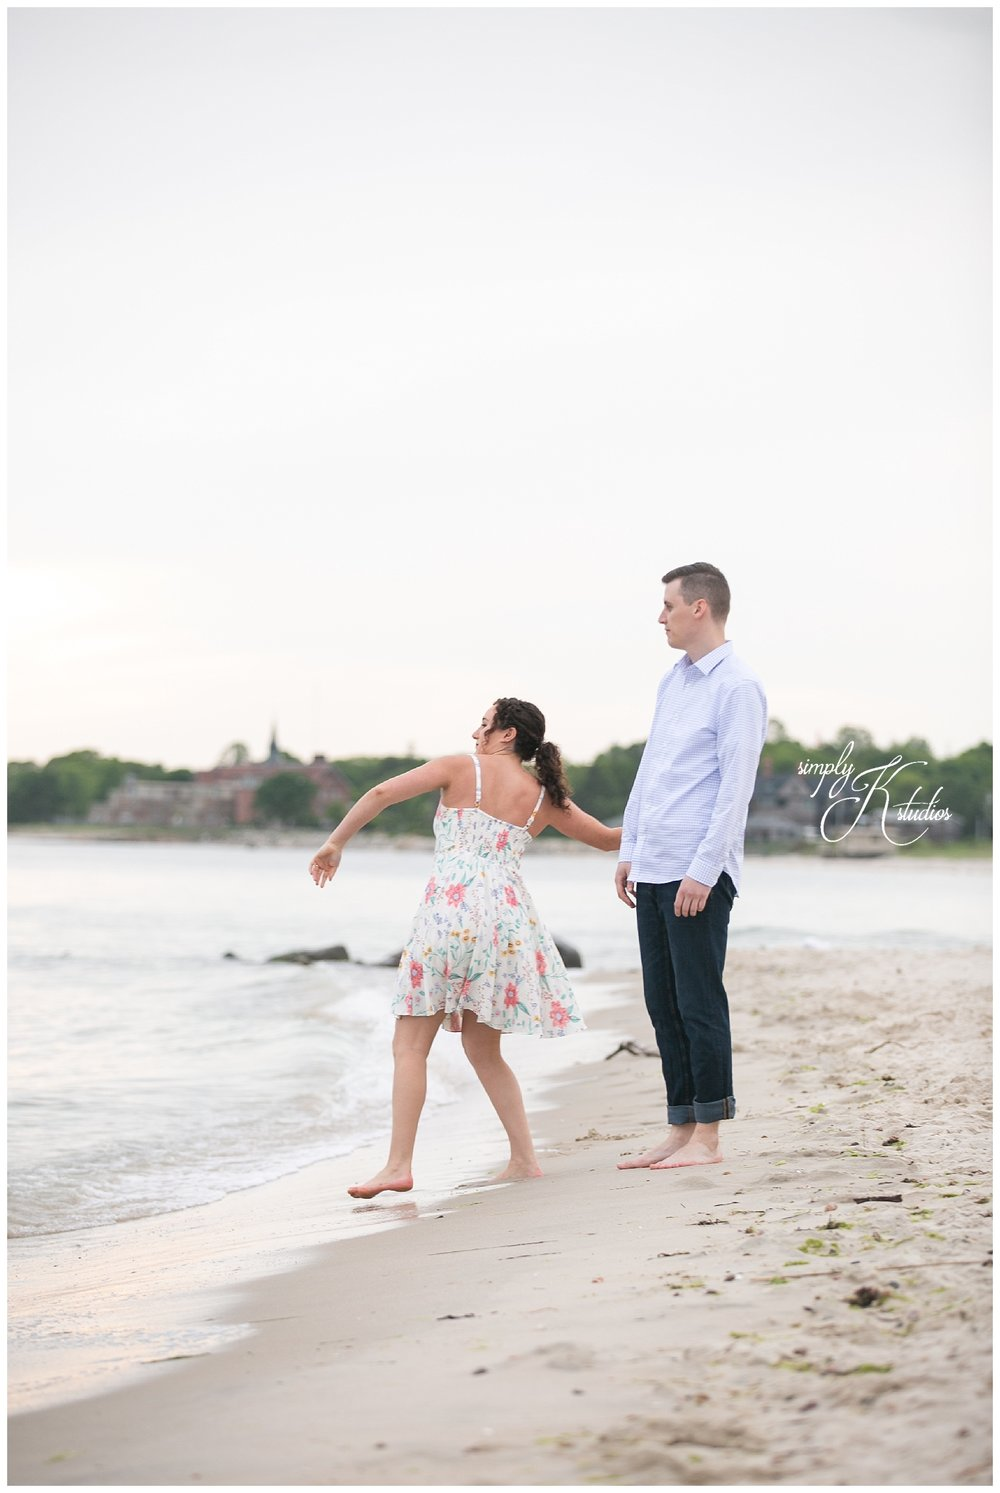 Fun Engagement Session Ideas.jpg